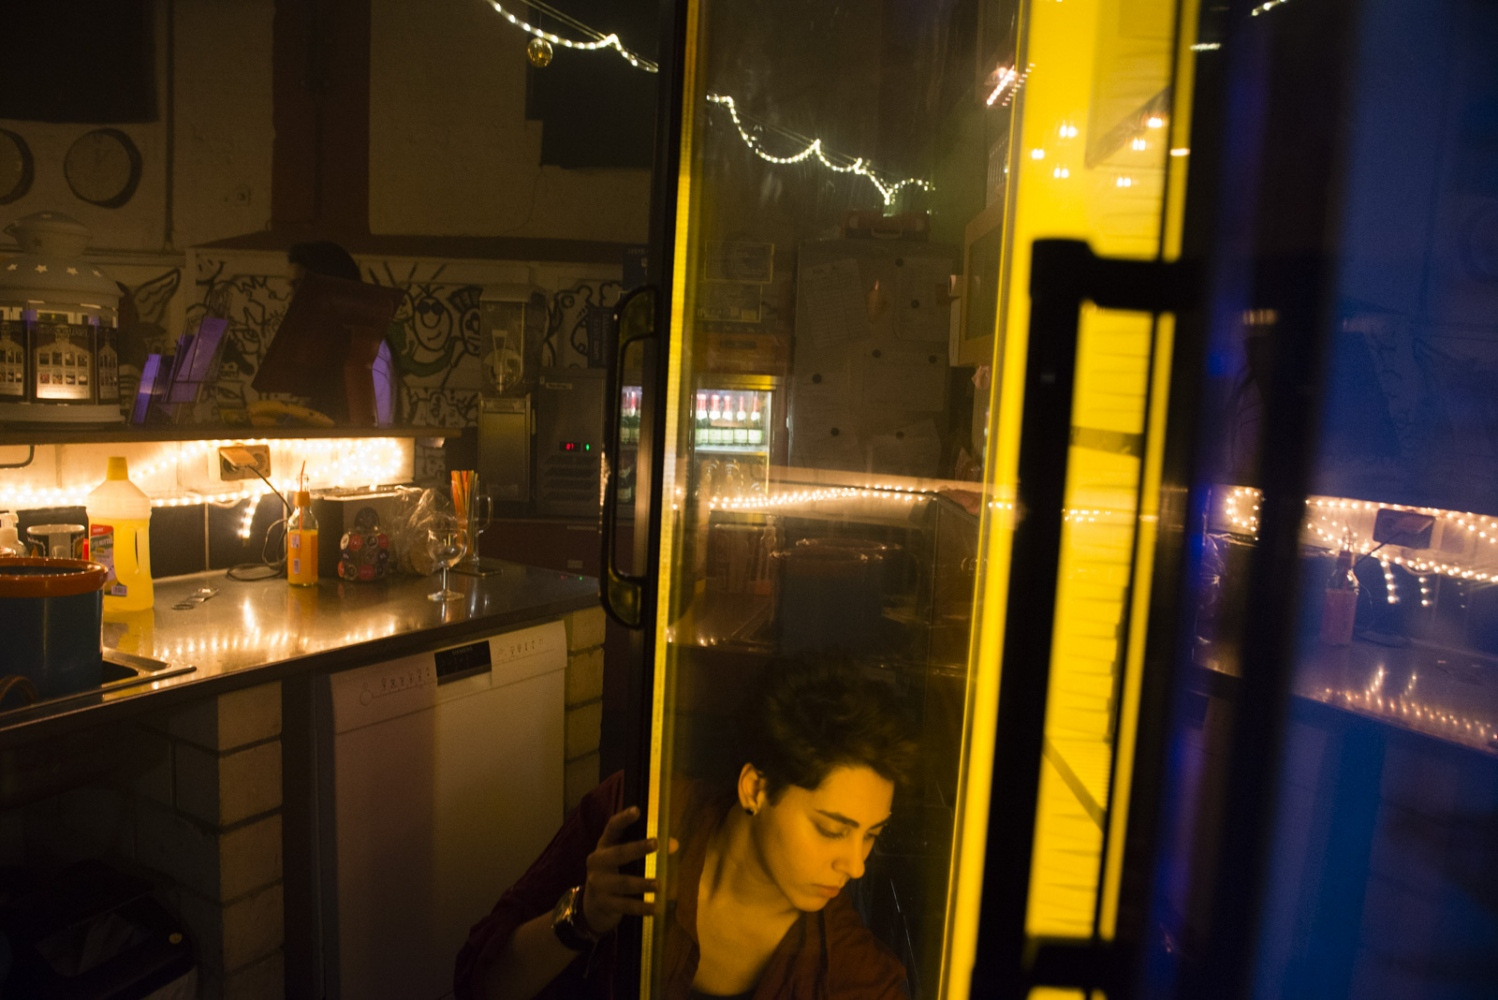 BERLIN| GERMANY | 2017-03-05 | Salwana (19) refill the beer fridge at work, a family-run bar in Berlin. She was only 13 year old when the civil war started in Syria. It took a couple of years until her hometown of Damascus was hit by war and therefore her life was impacted it. Salwana and her family fled Syria and flew into Germany in 2014 where they seek asylum. Now going to school and working at a bar part time, Salwana is well adopted and embraces her new home.